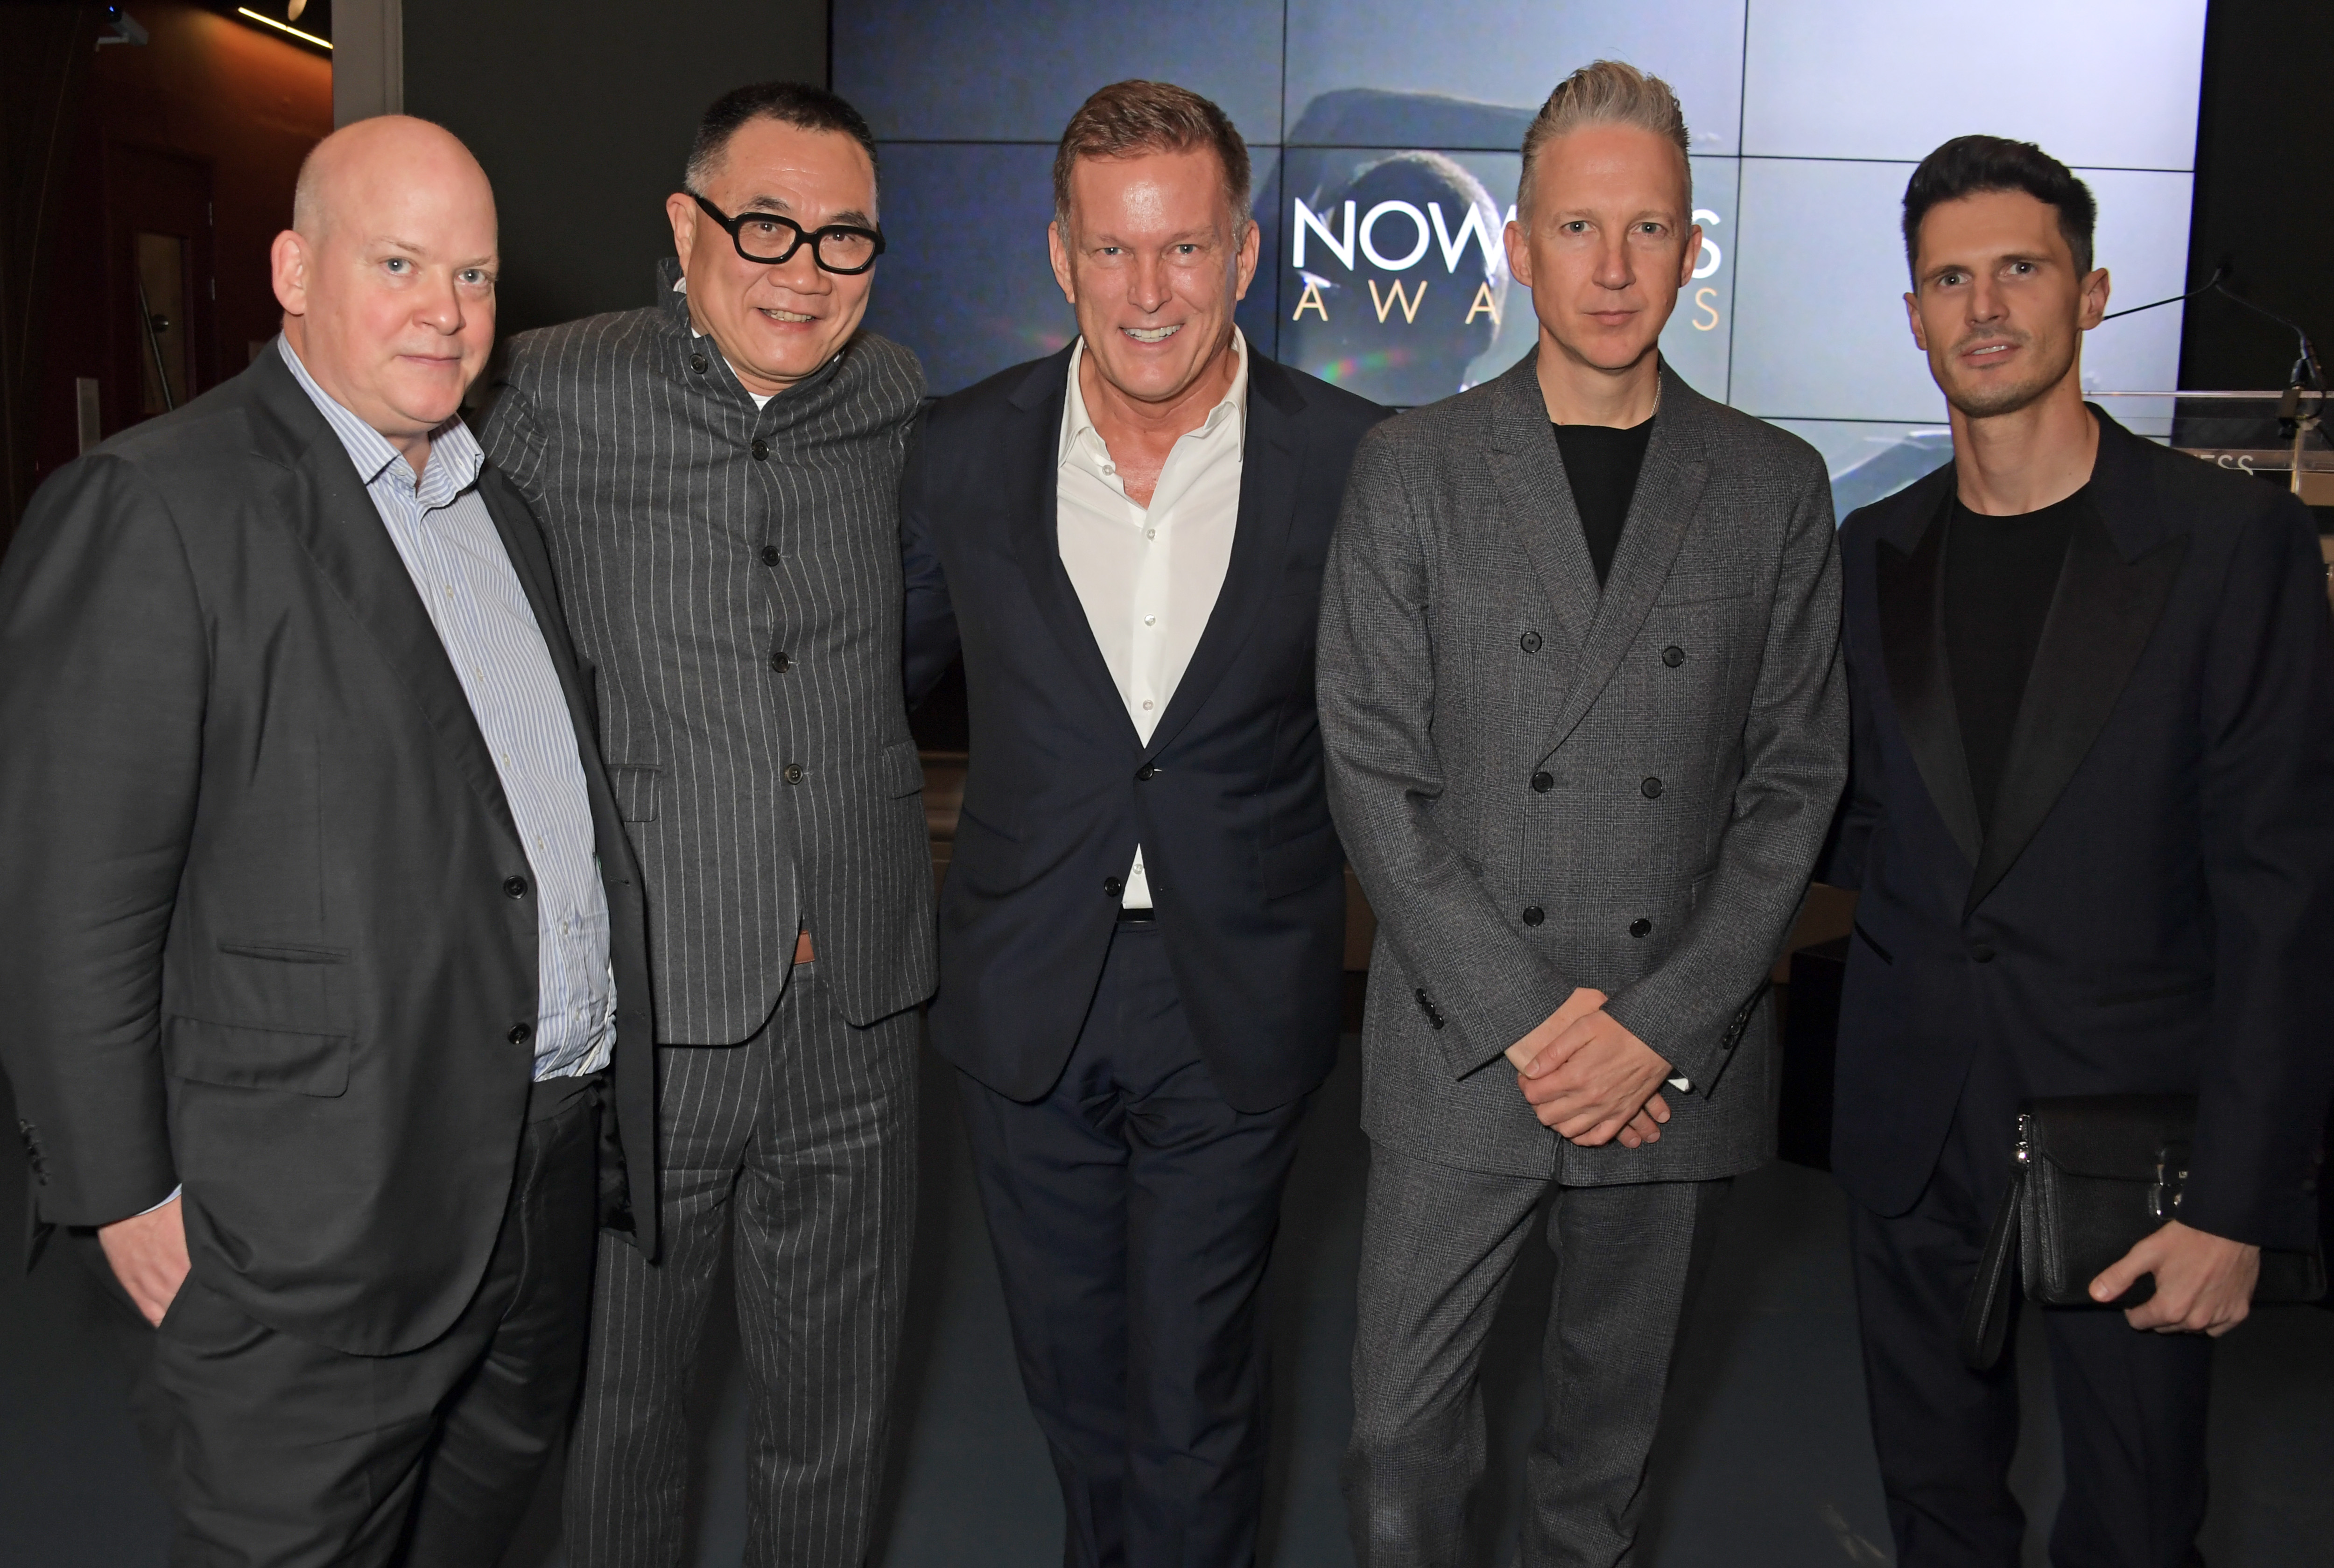 (L to R) Christopher Zanardi-Landi, Thomas Shao, Andrew Maag, Jefferson Hack and guest attend The Nowness Awards ceremony.